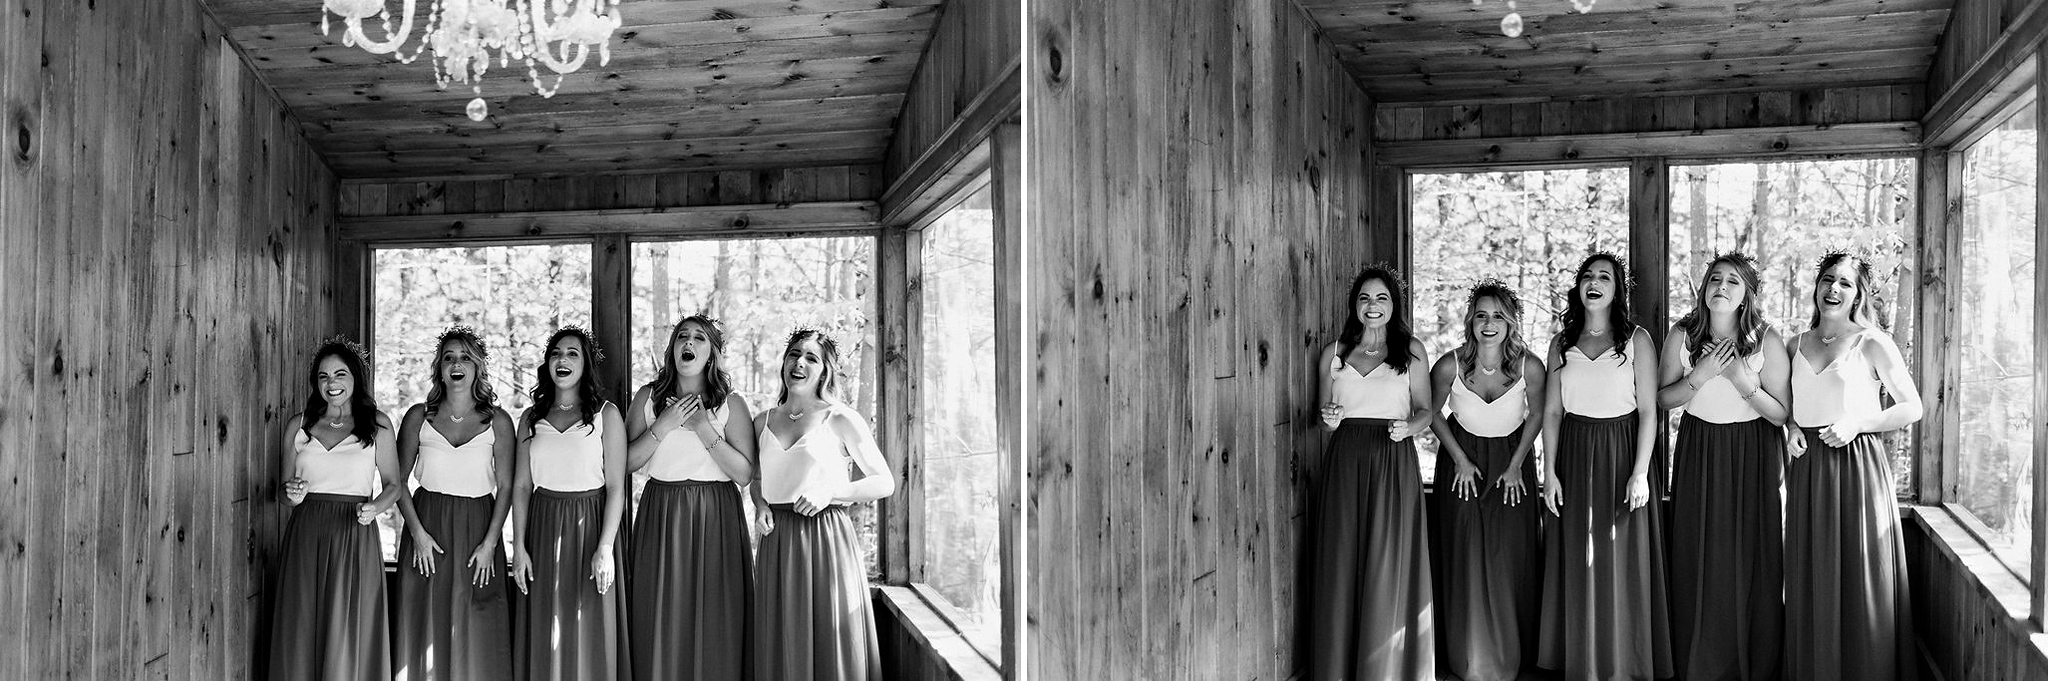 Bridesmaids first look with bride at camp wedding